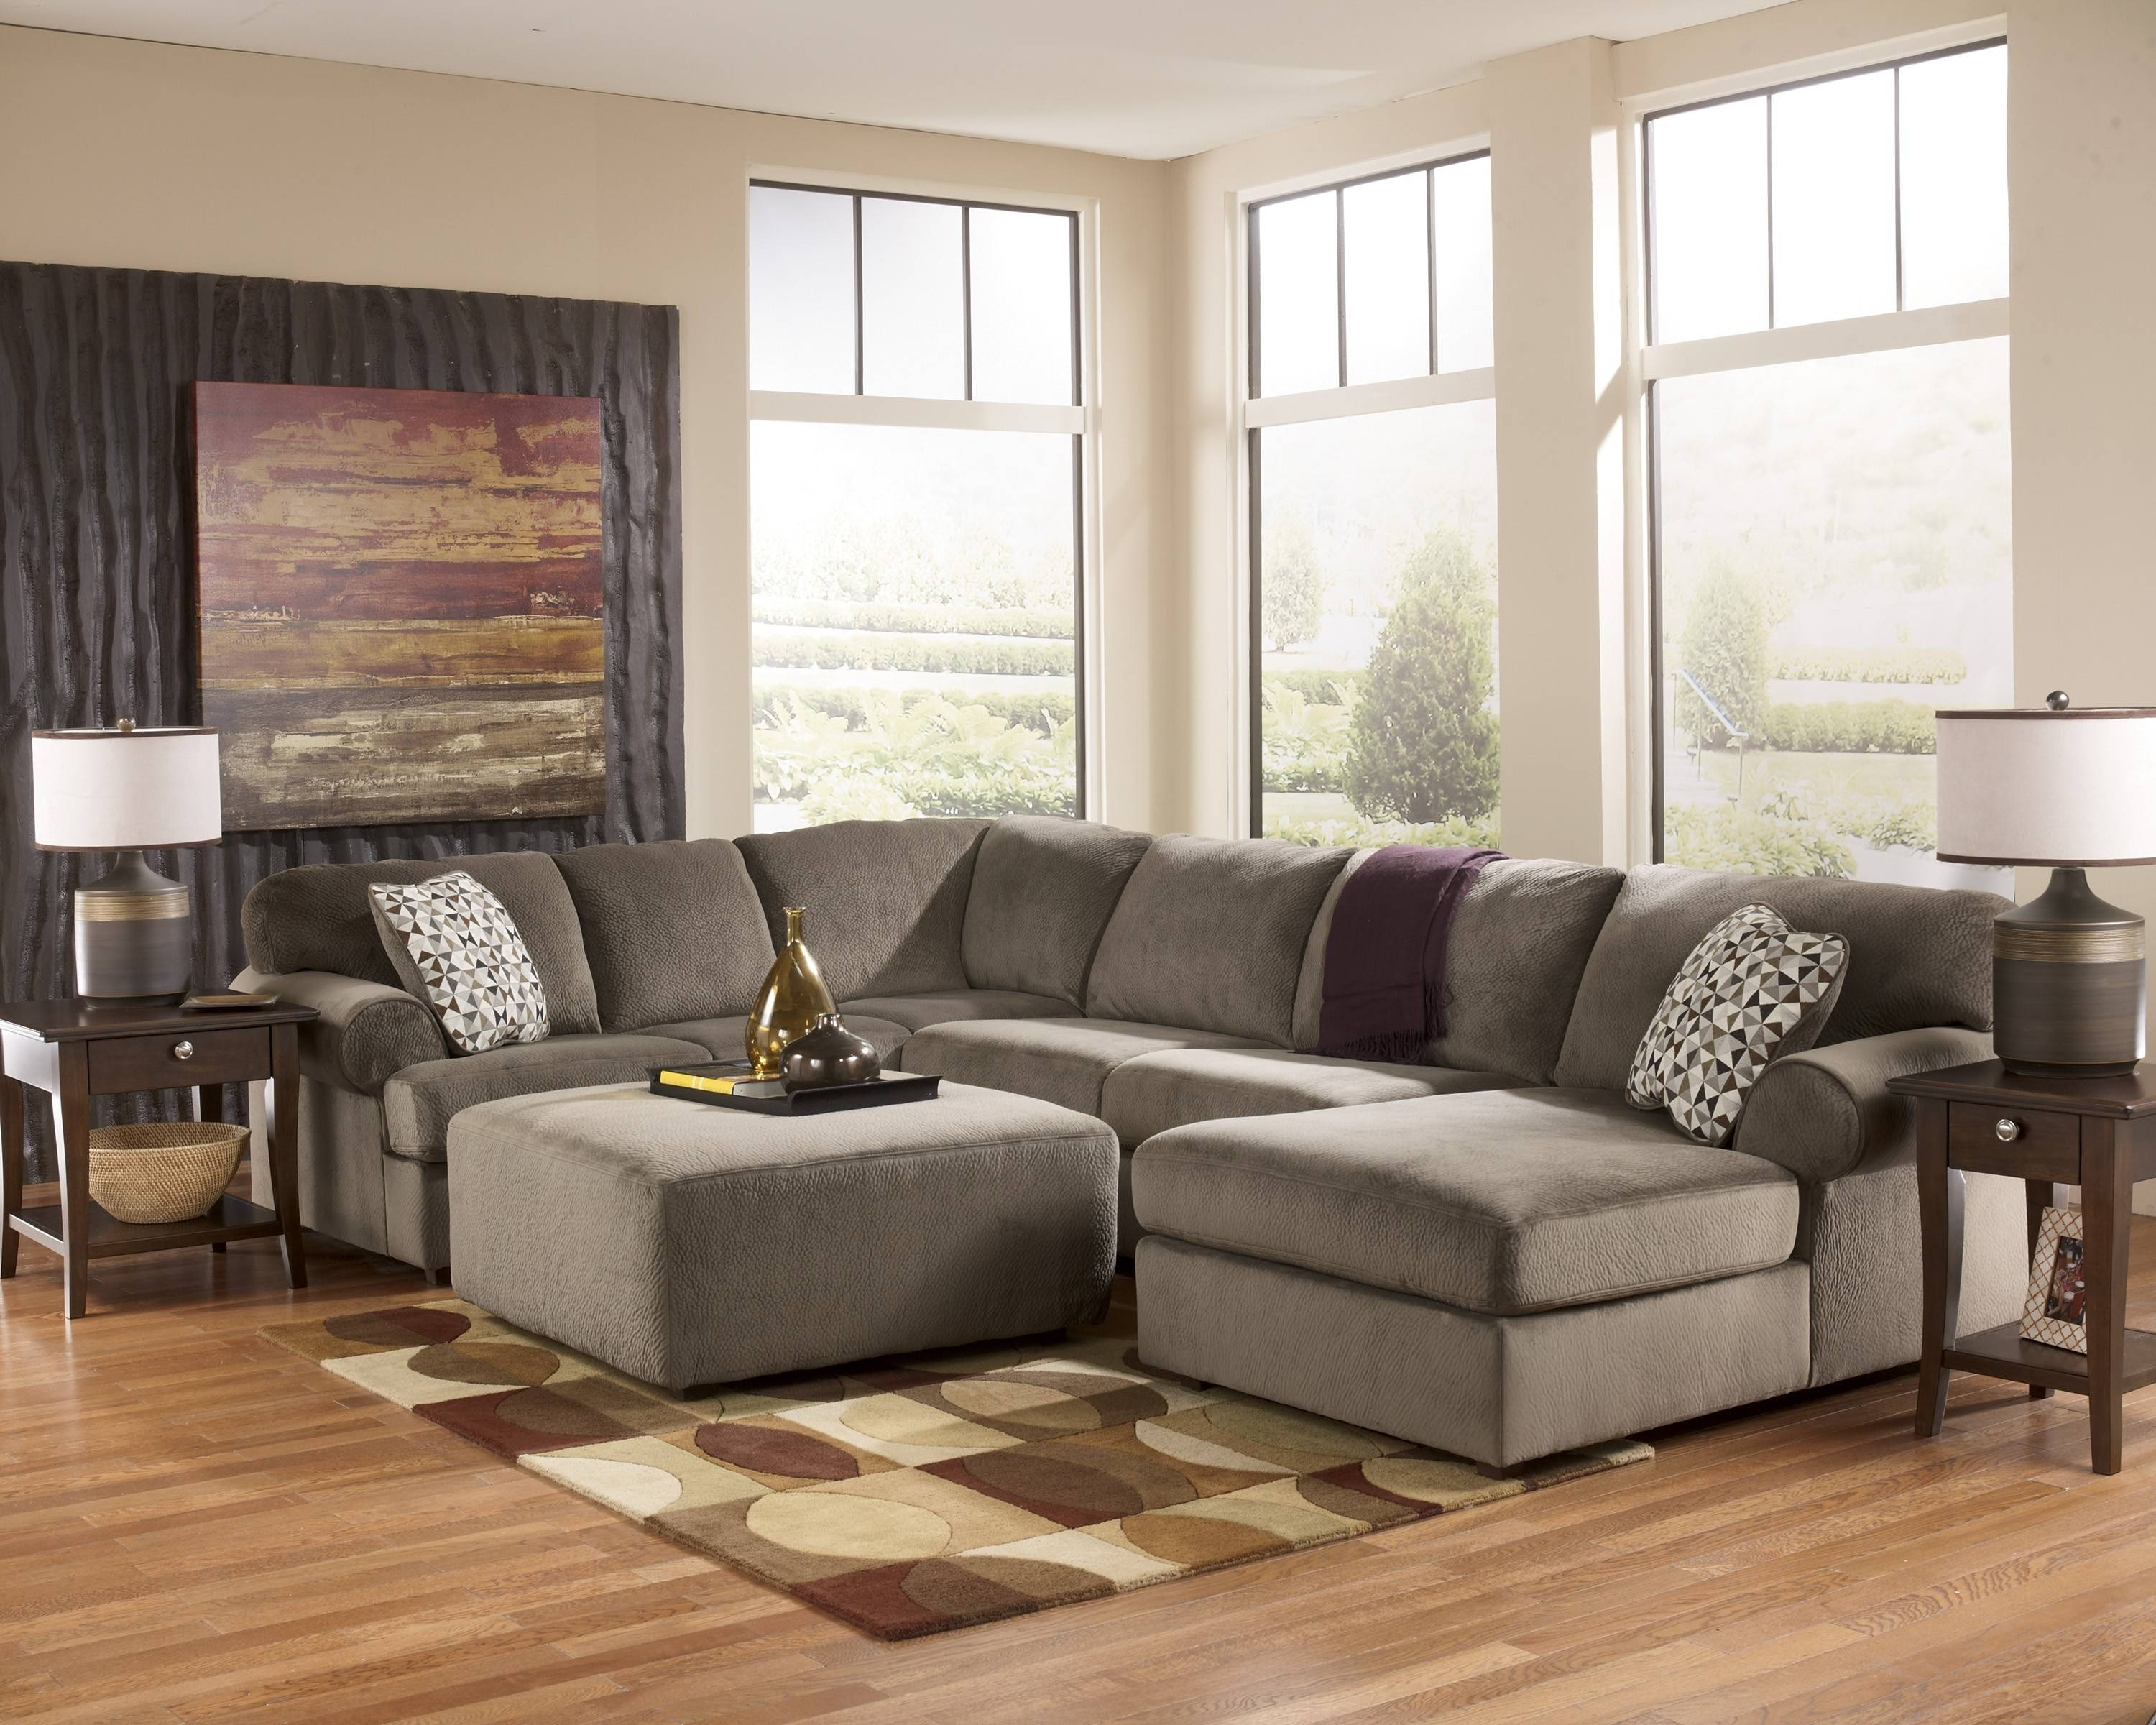 Chairs : Interior Luxury Oversized Sectional Sofa For Awesome Living Within Sectionals With Oversized Ottoman (Image 1 of 10)